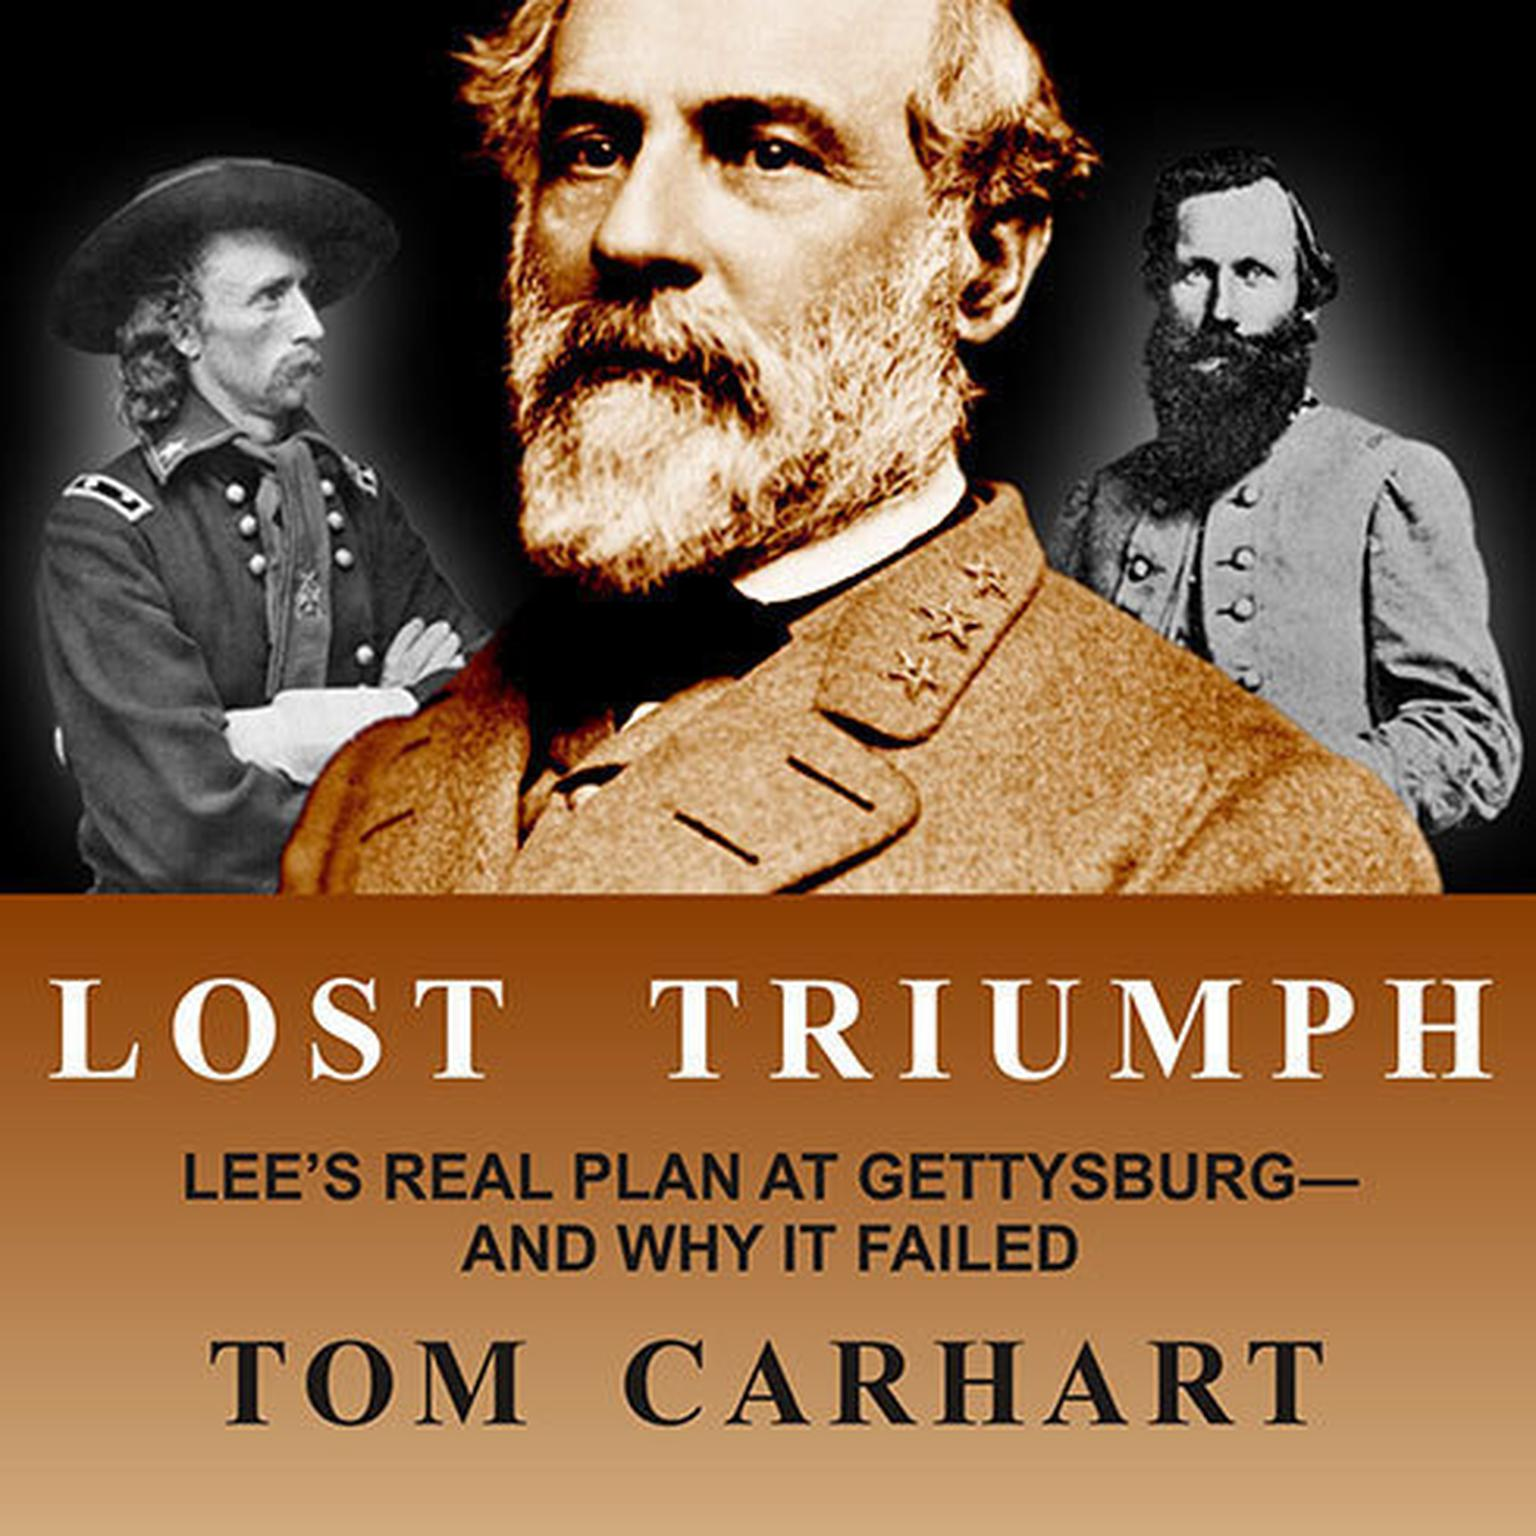 Printable Lost Triumph: Lee's Real Plan at Gettysburg—and Why it Failed Audiobook Cover Art